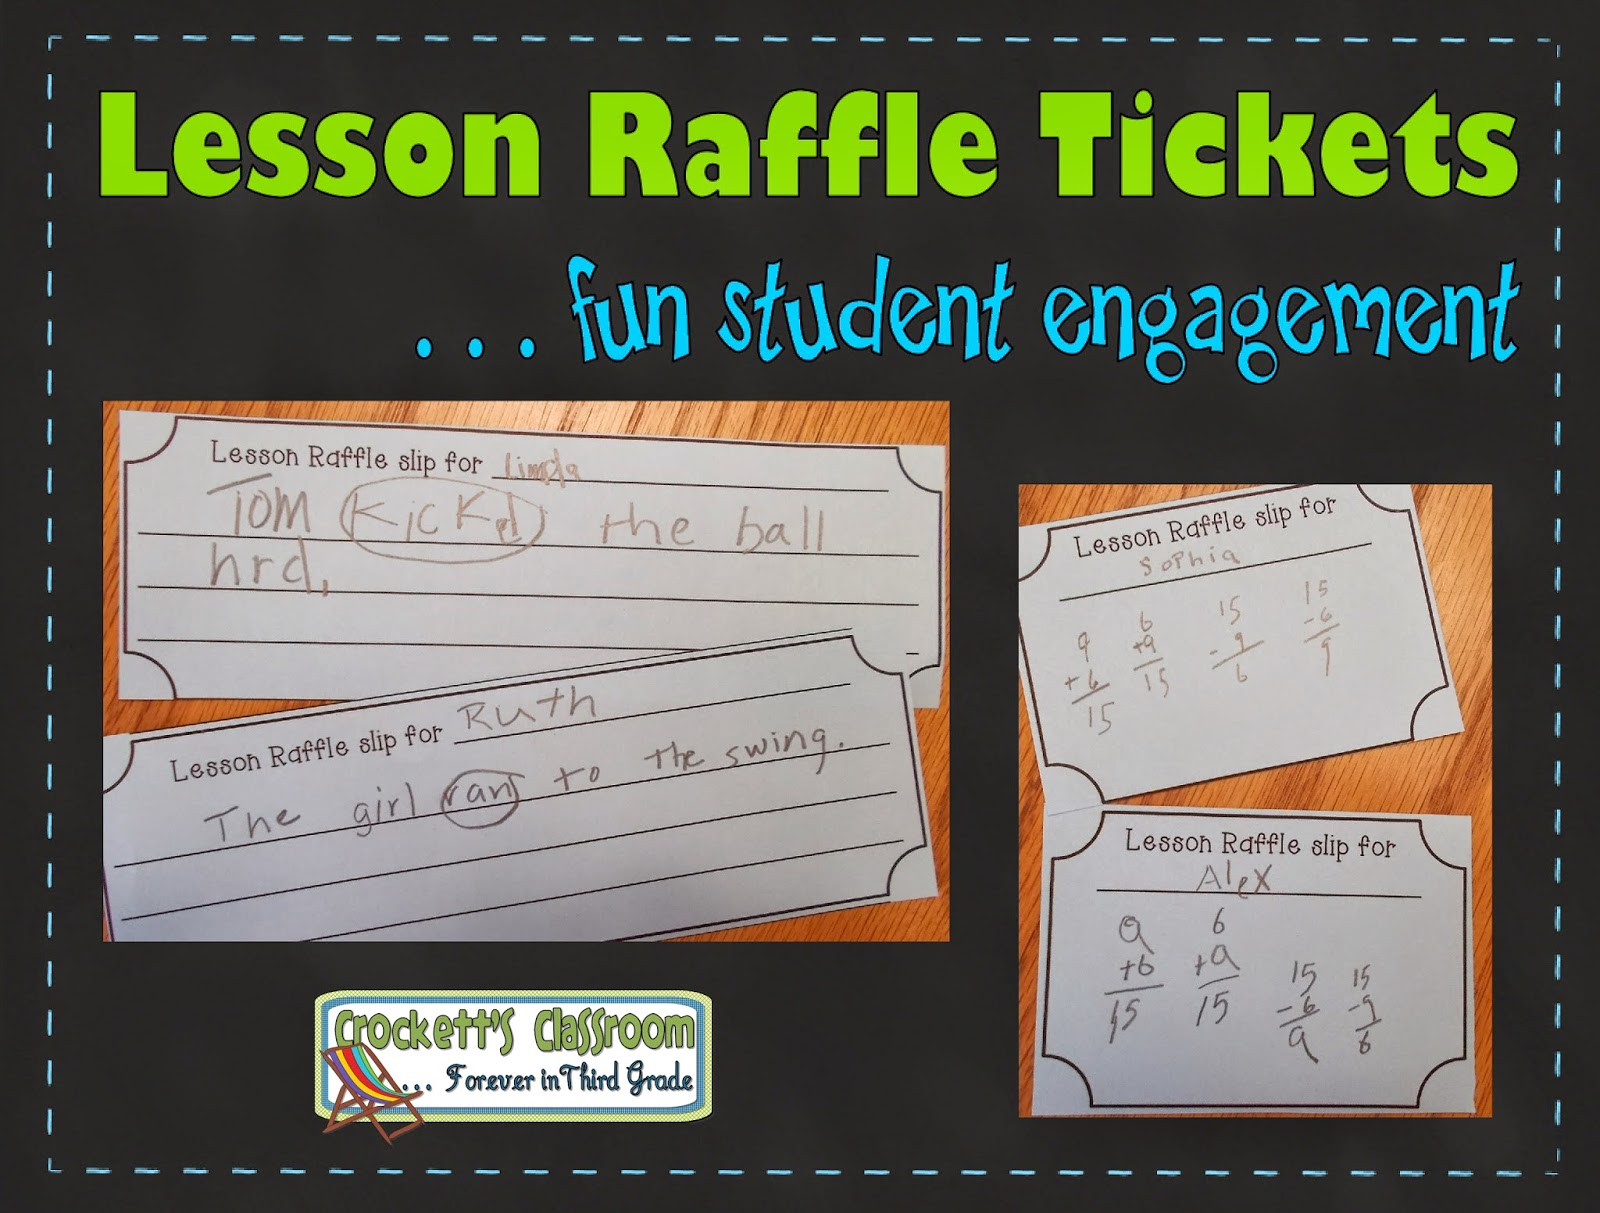 Lesson Raffle Slips, a fun and engaging way to check student understanding during a lesson-----crockettsclassroom.com